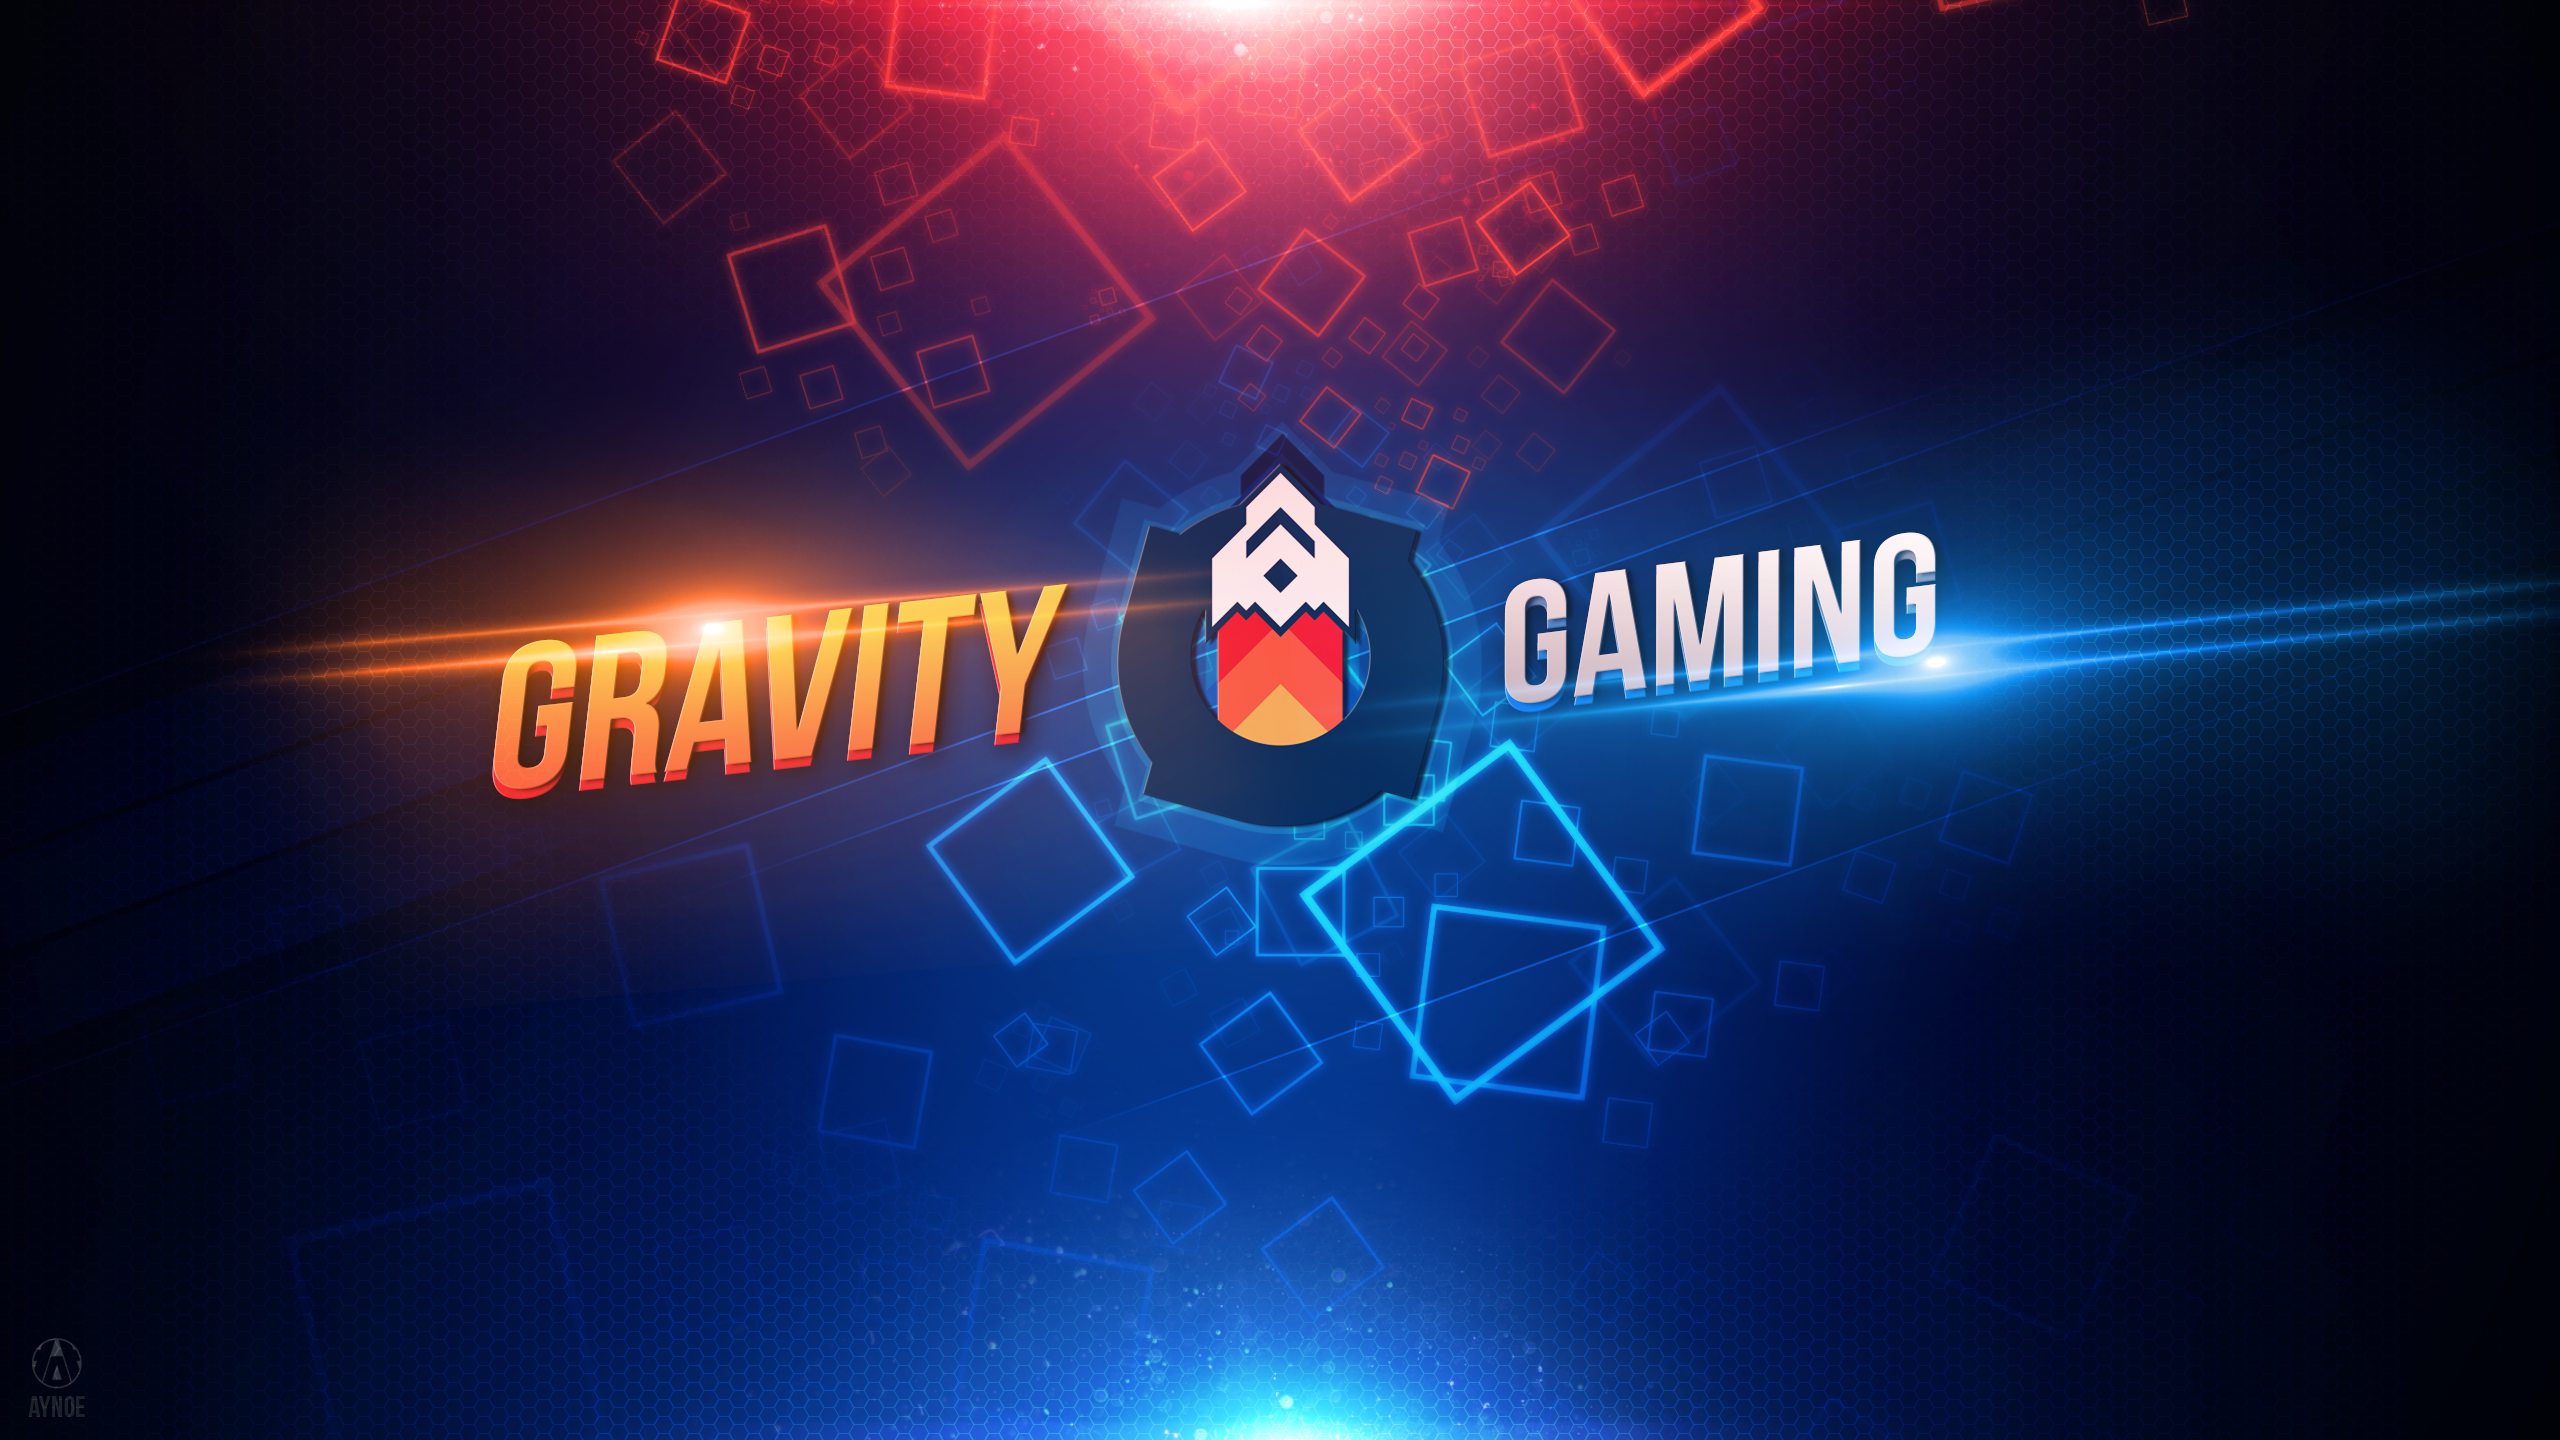 Gravity gaming wallpaper logo league of legends by aynoe on deviantart gravity gaming wallpaper logo league of legends by aynoe voltagebd Image collections